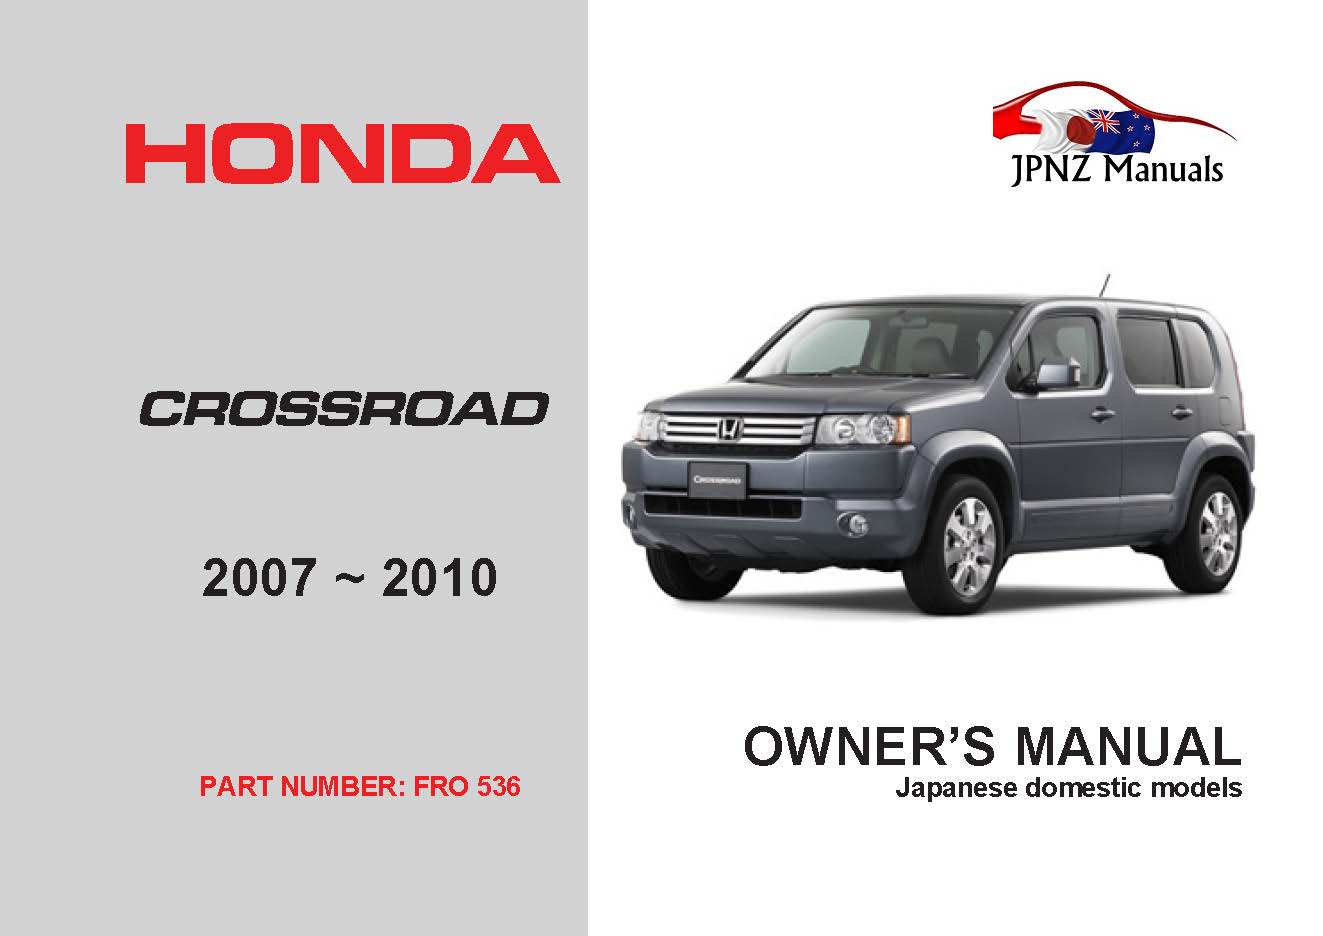 honda crossroad manual